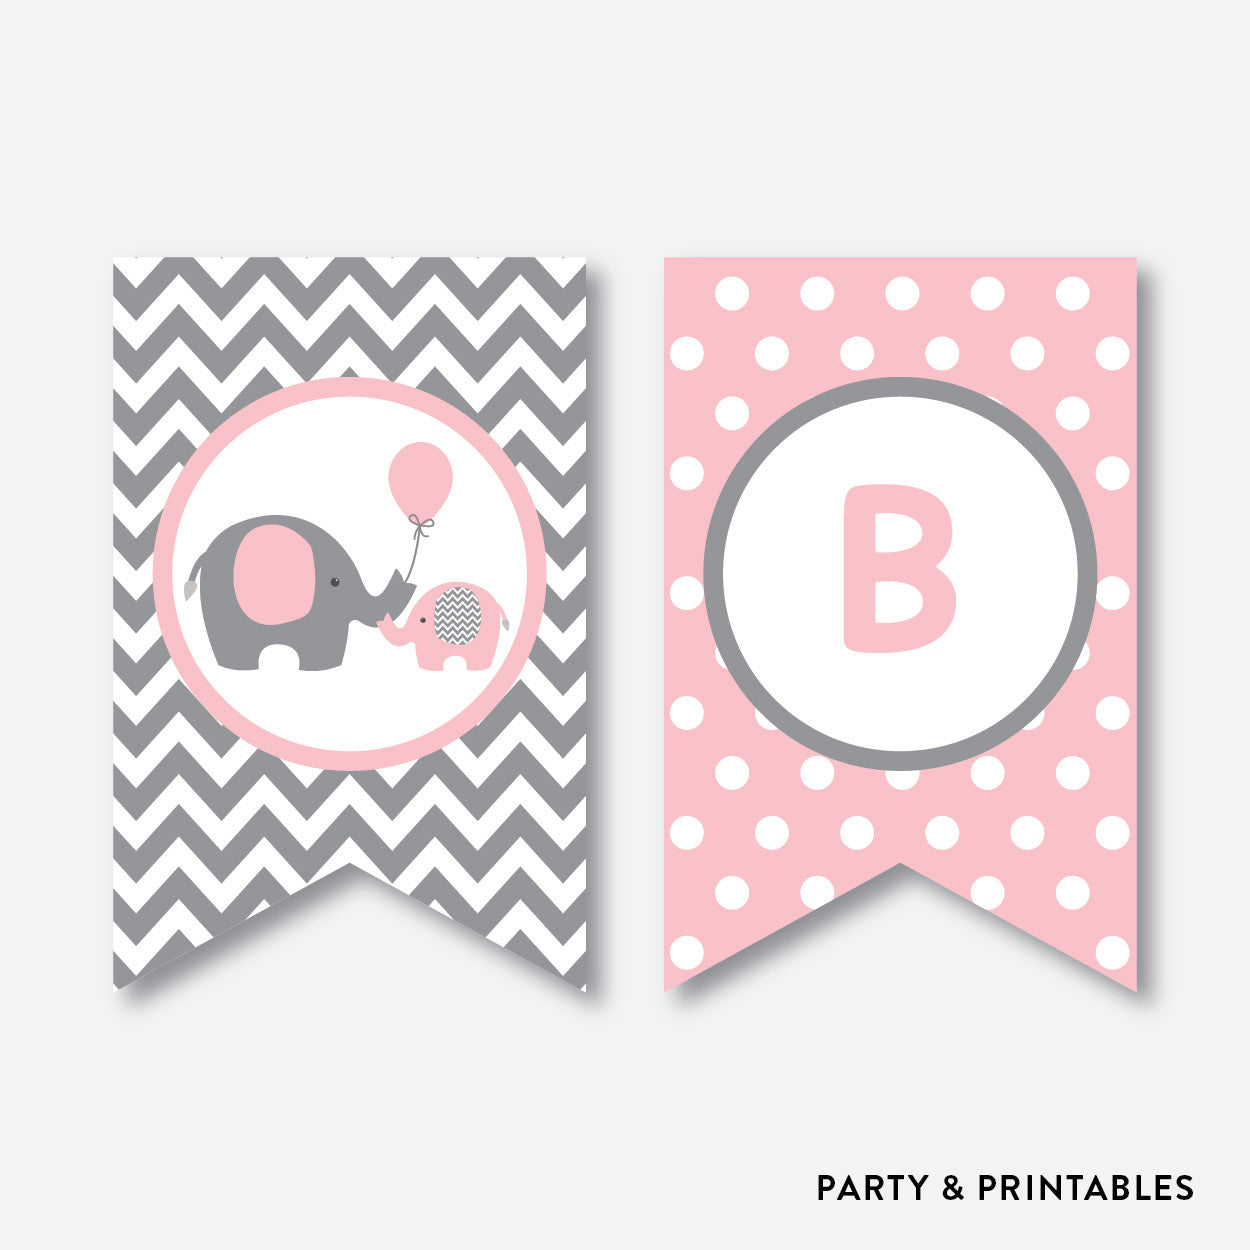 Elephant Party Banner / Baby Shower Banner / Non-Personalized / Instant Download (SBS.36), party printables - Party and Printables